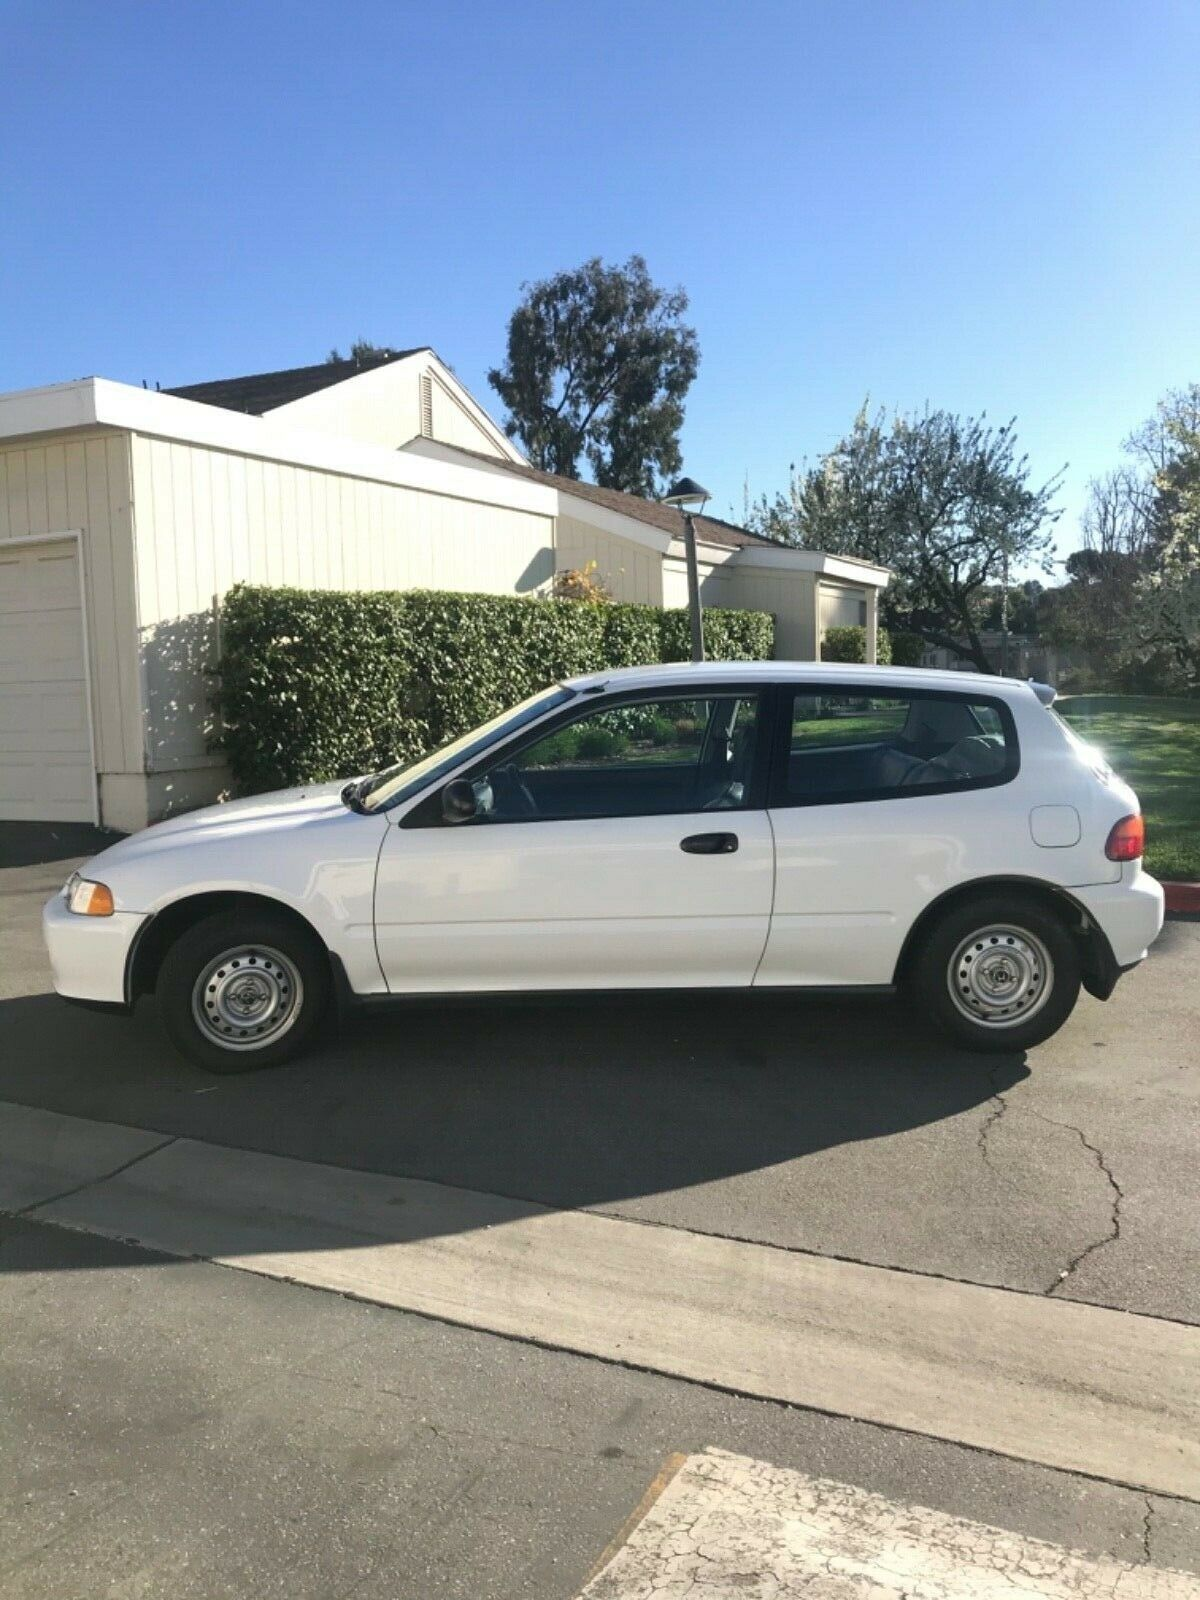 92 Eg Hatch : hatch, Honda, Civic, Hatchback, Manual, Original, Miles, Clean, Excellent, Honolulu,, Hawaii,, United, States